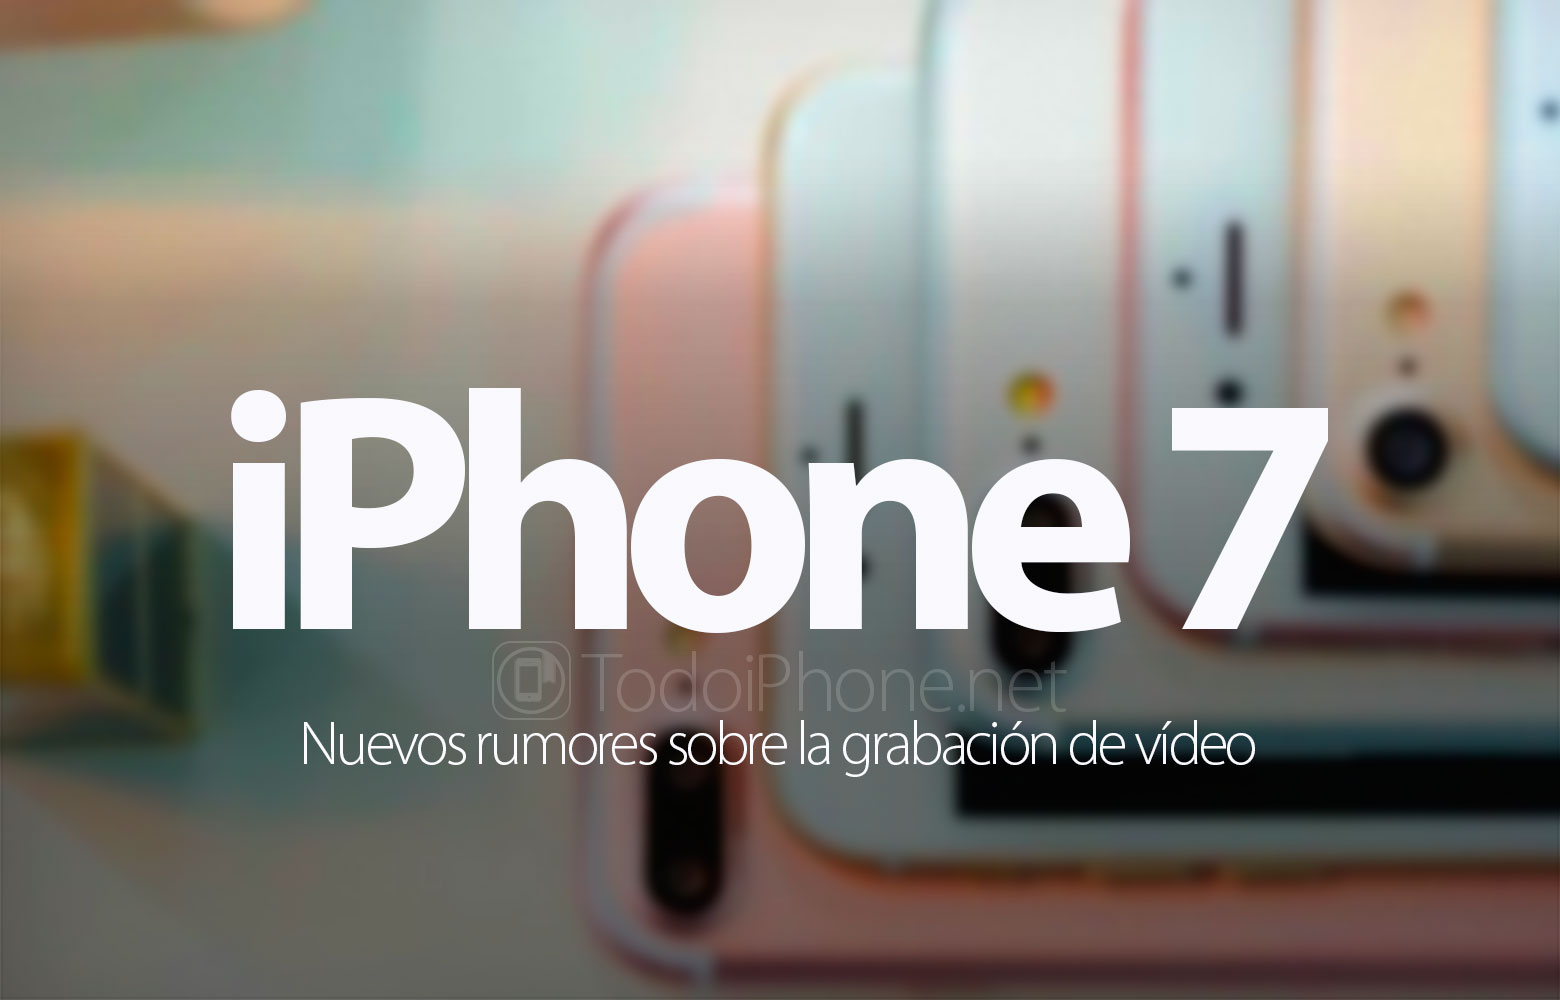 iphone-7-grabar-videos-4k-60-fps-rumor